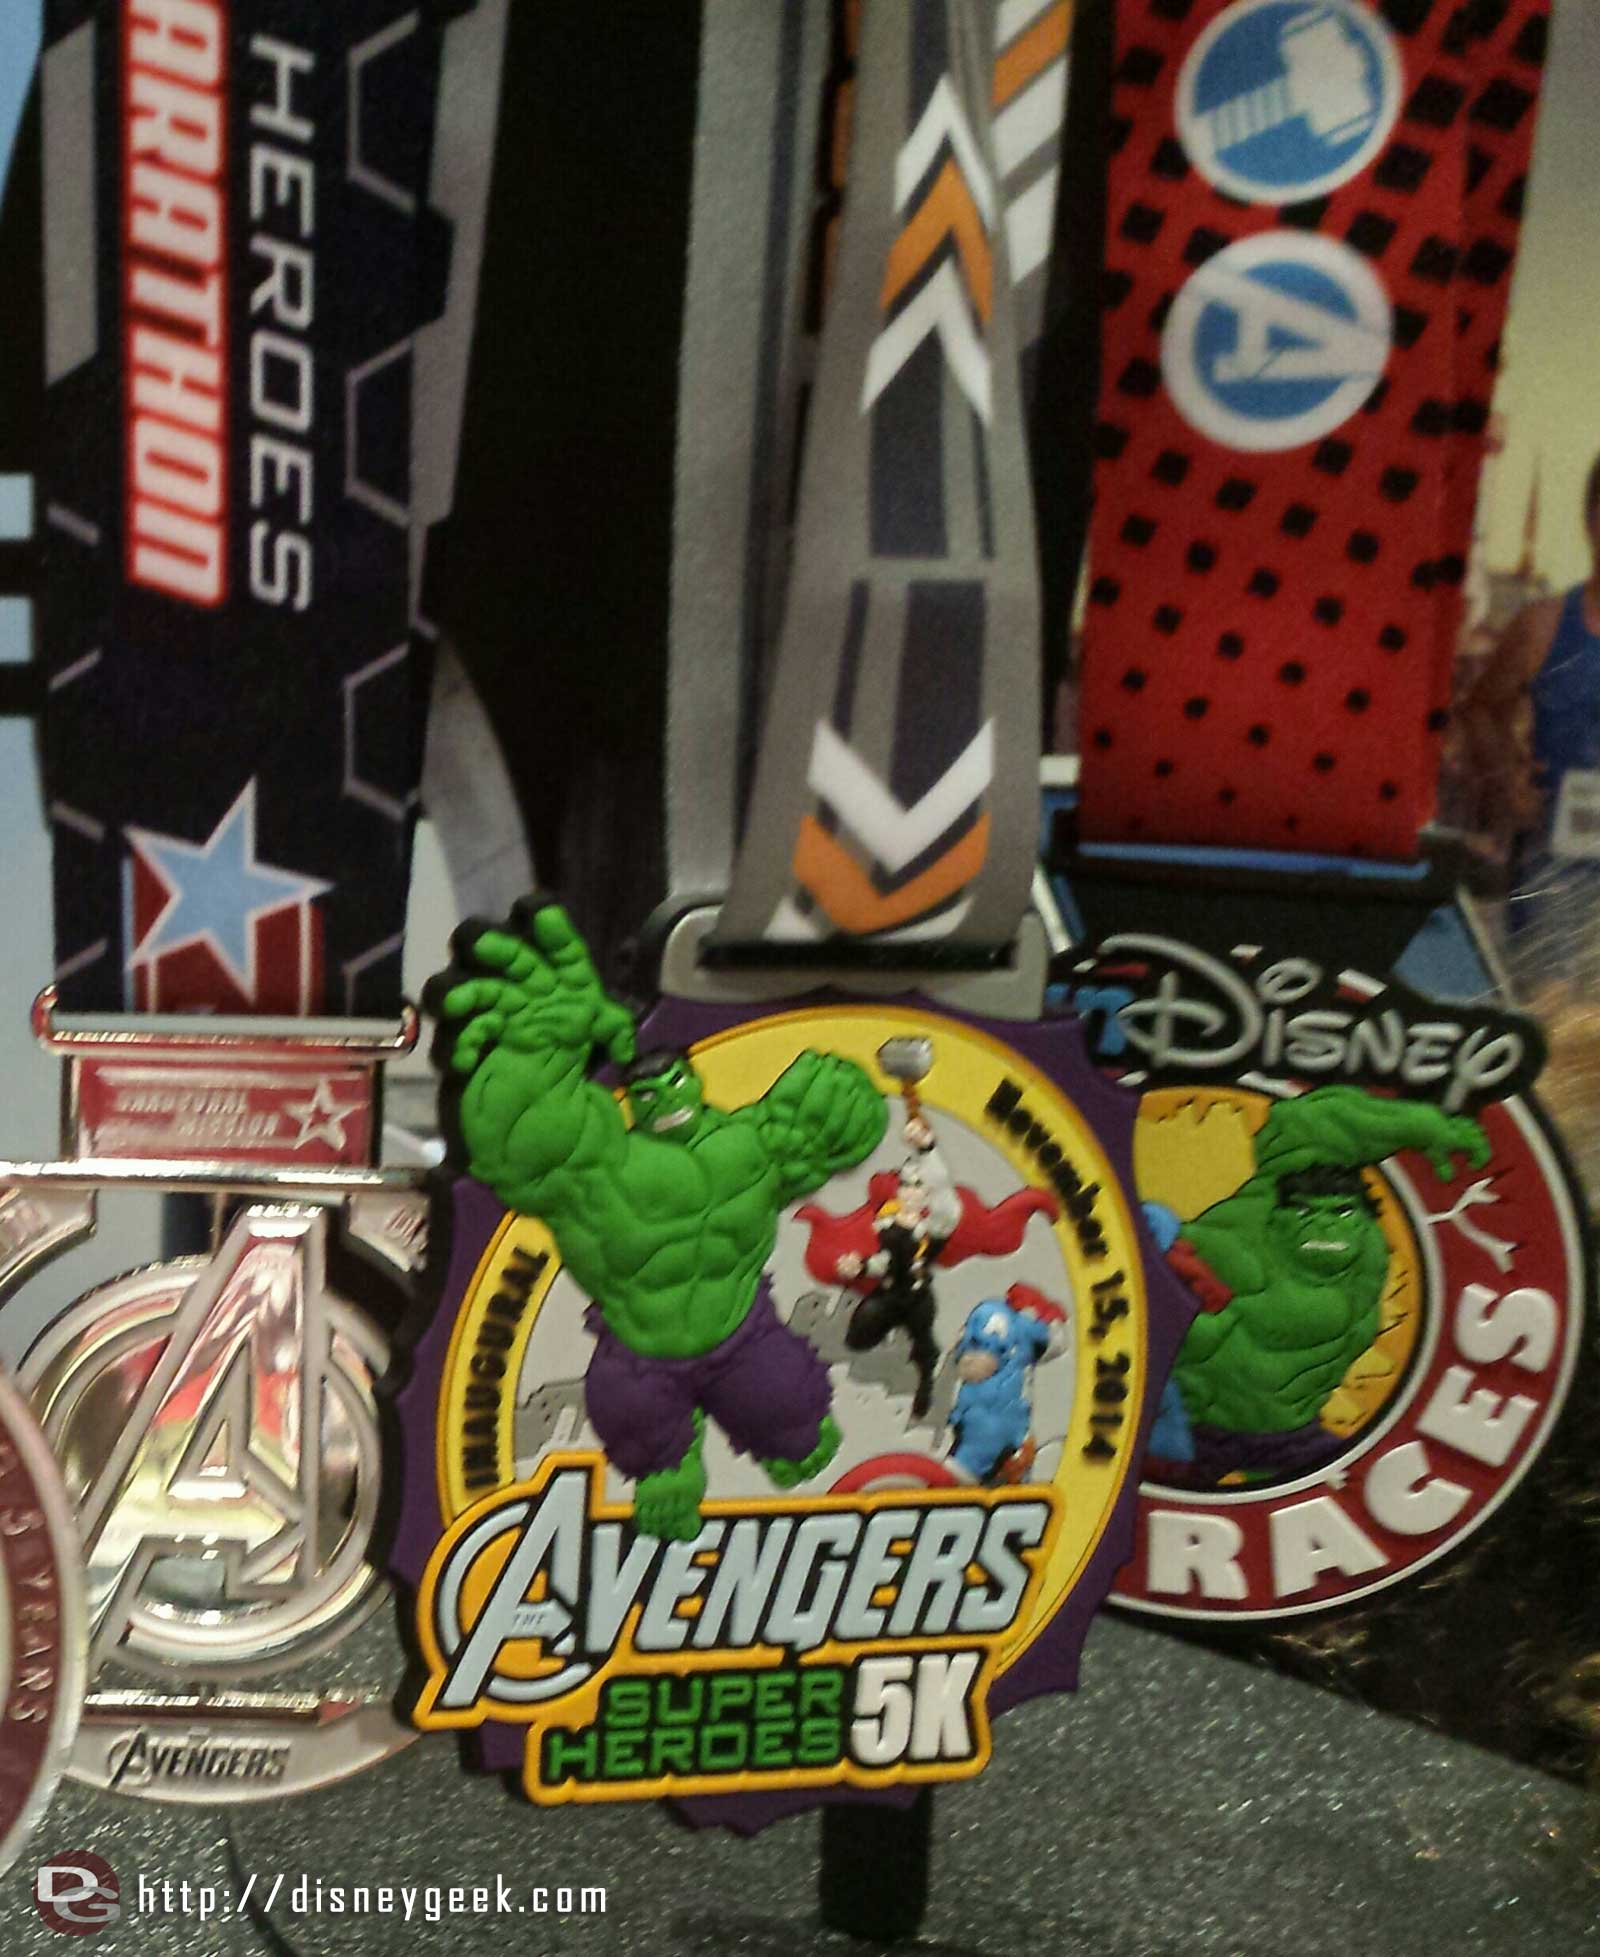 This weekend's Avengers medals #RunDisney